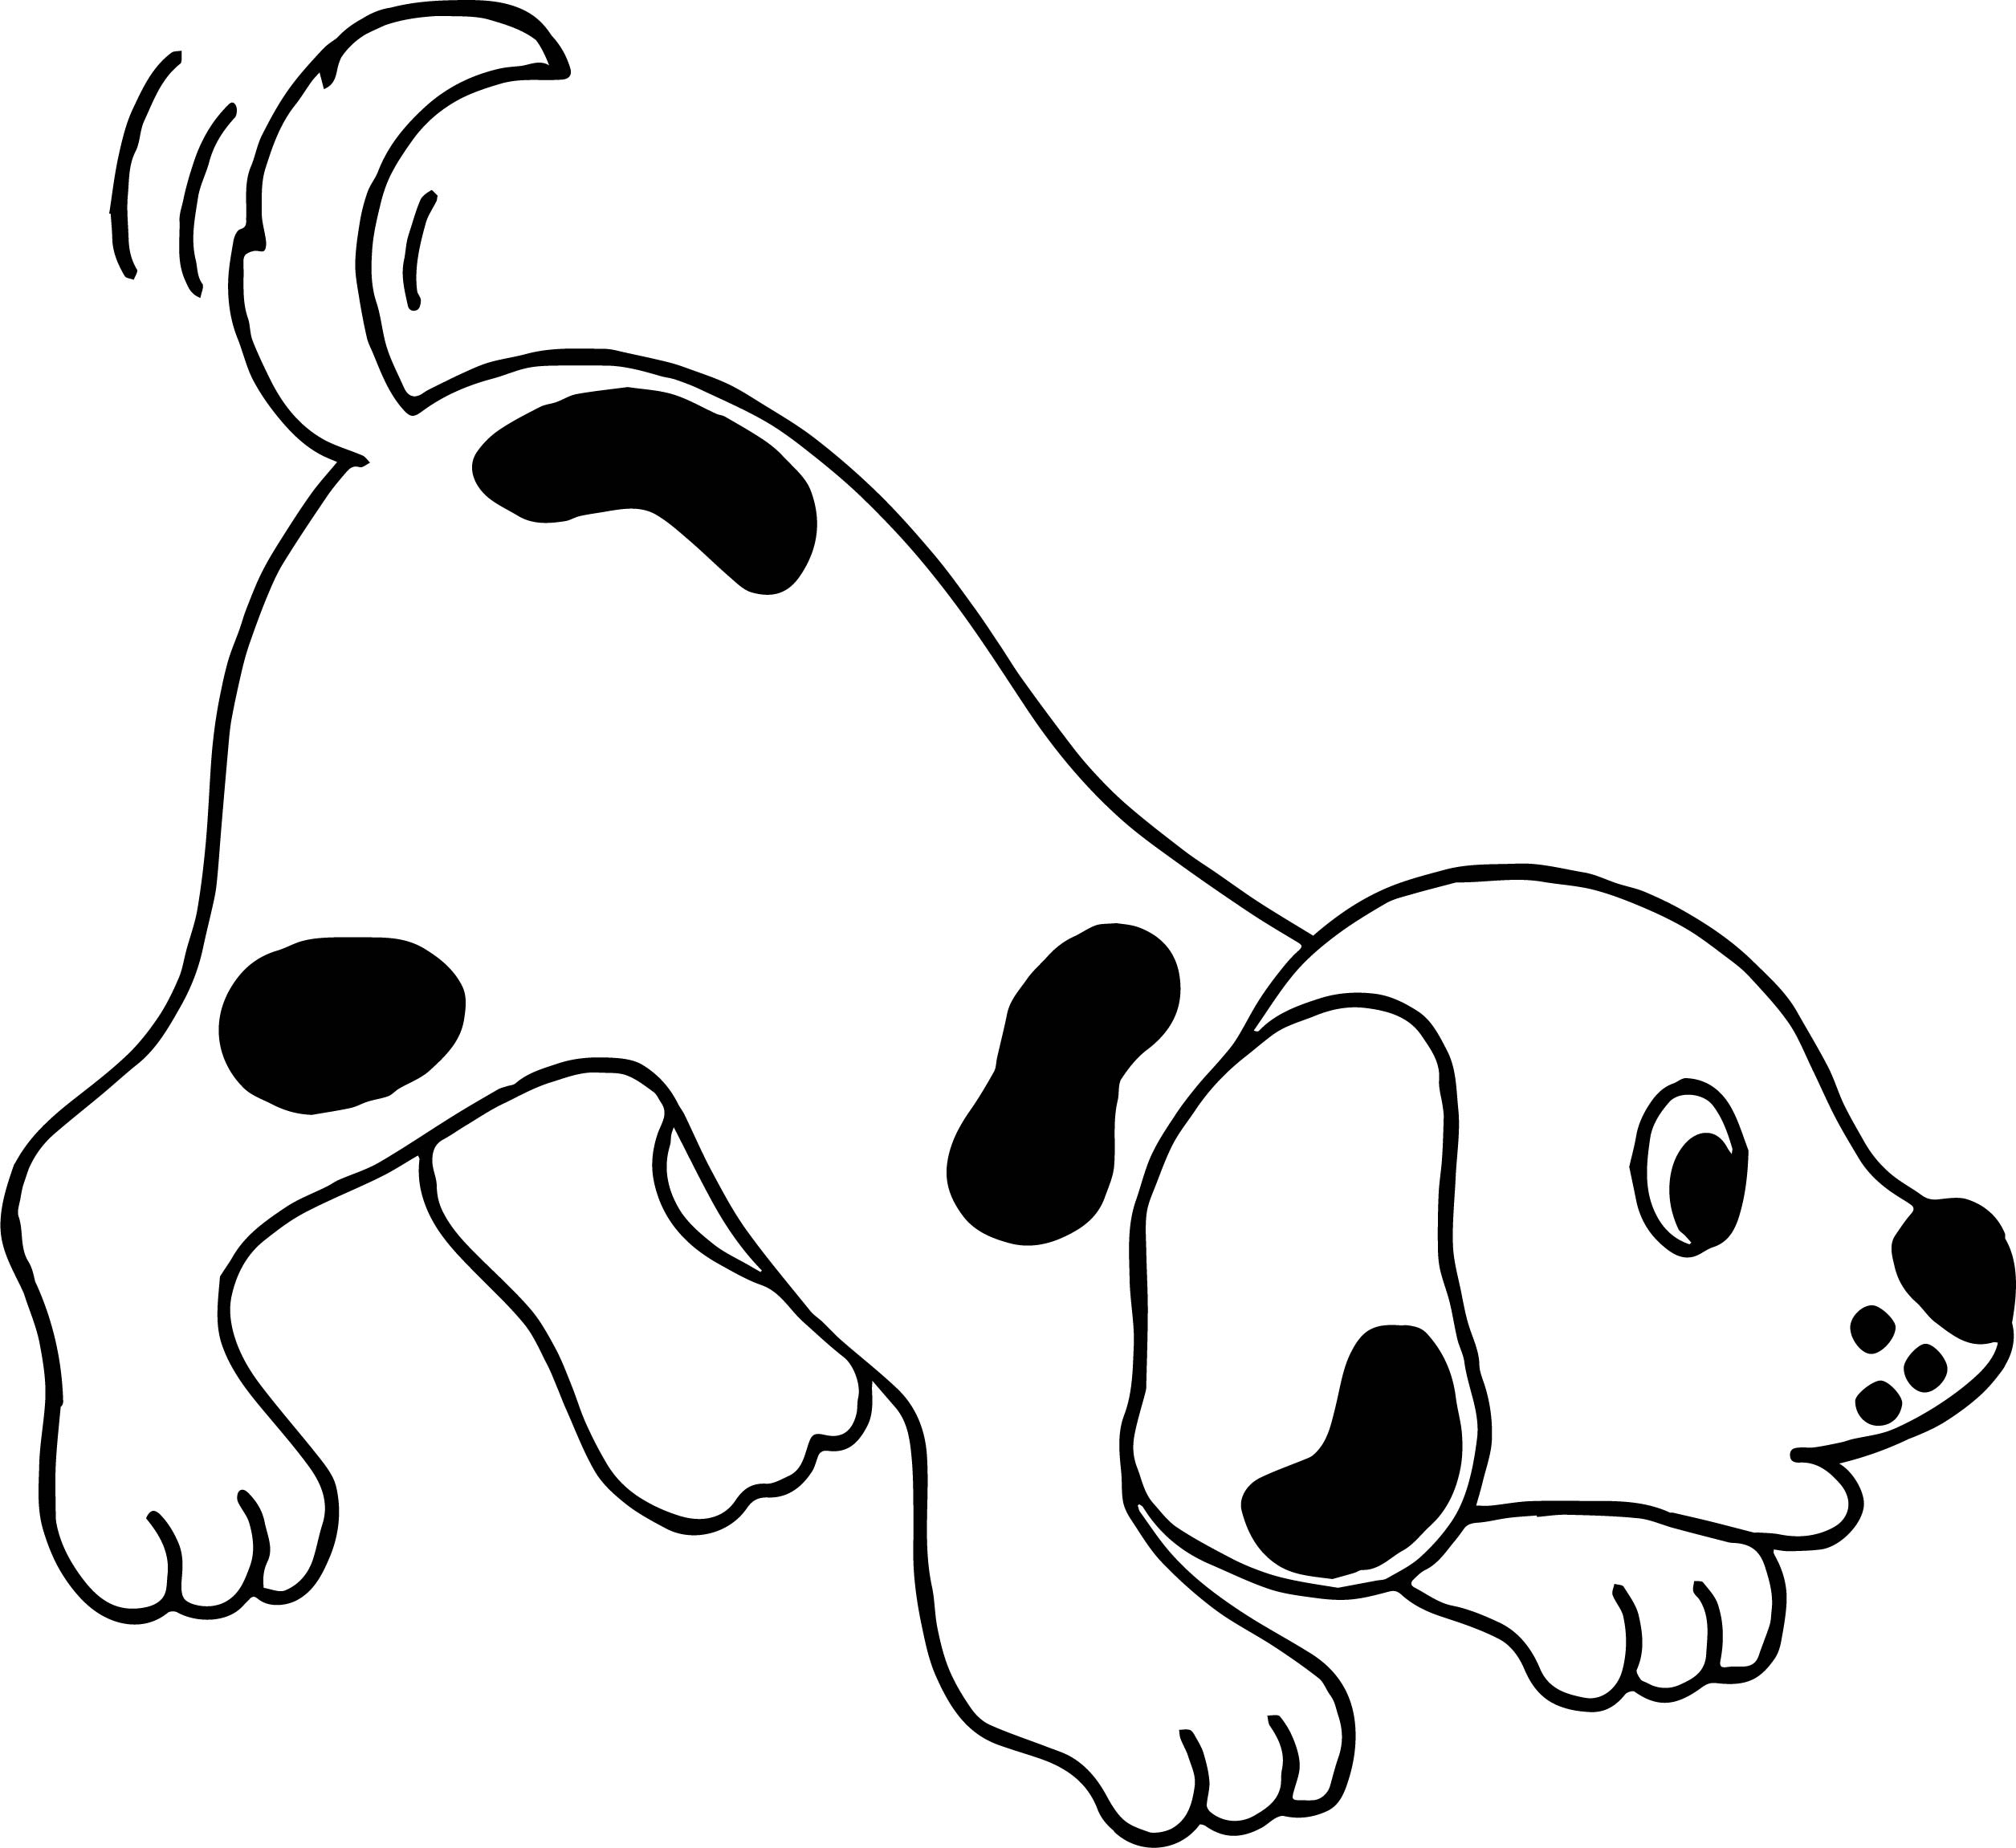 little dog laughed coloring pages - photo#21